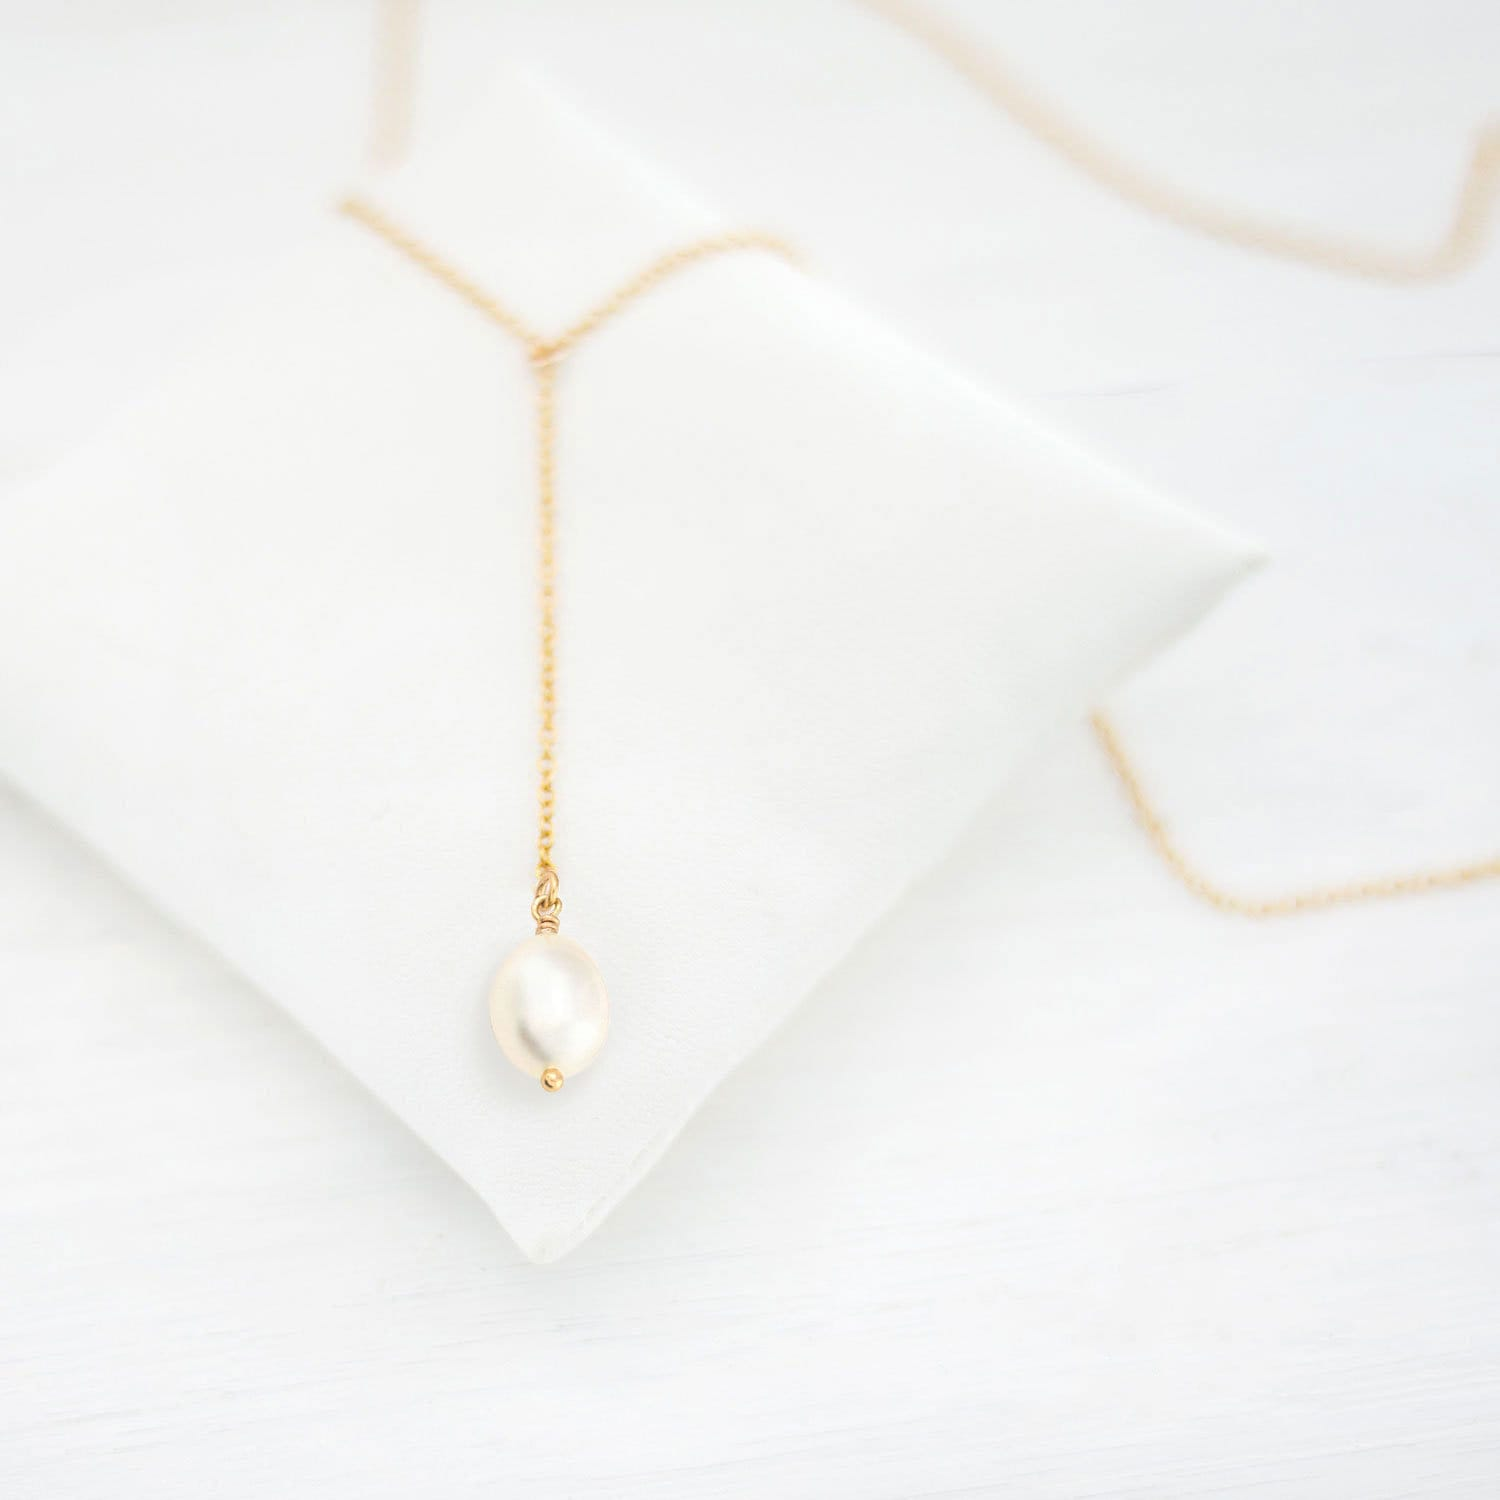 Delicate Jewelry Bridal Rose Gold Necklace Silver Lariat Necklace Dainty Back Necklaces Bridesmaid Gift Moonstone Drop Necklace